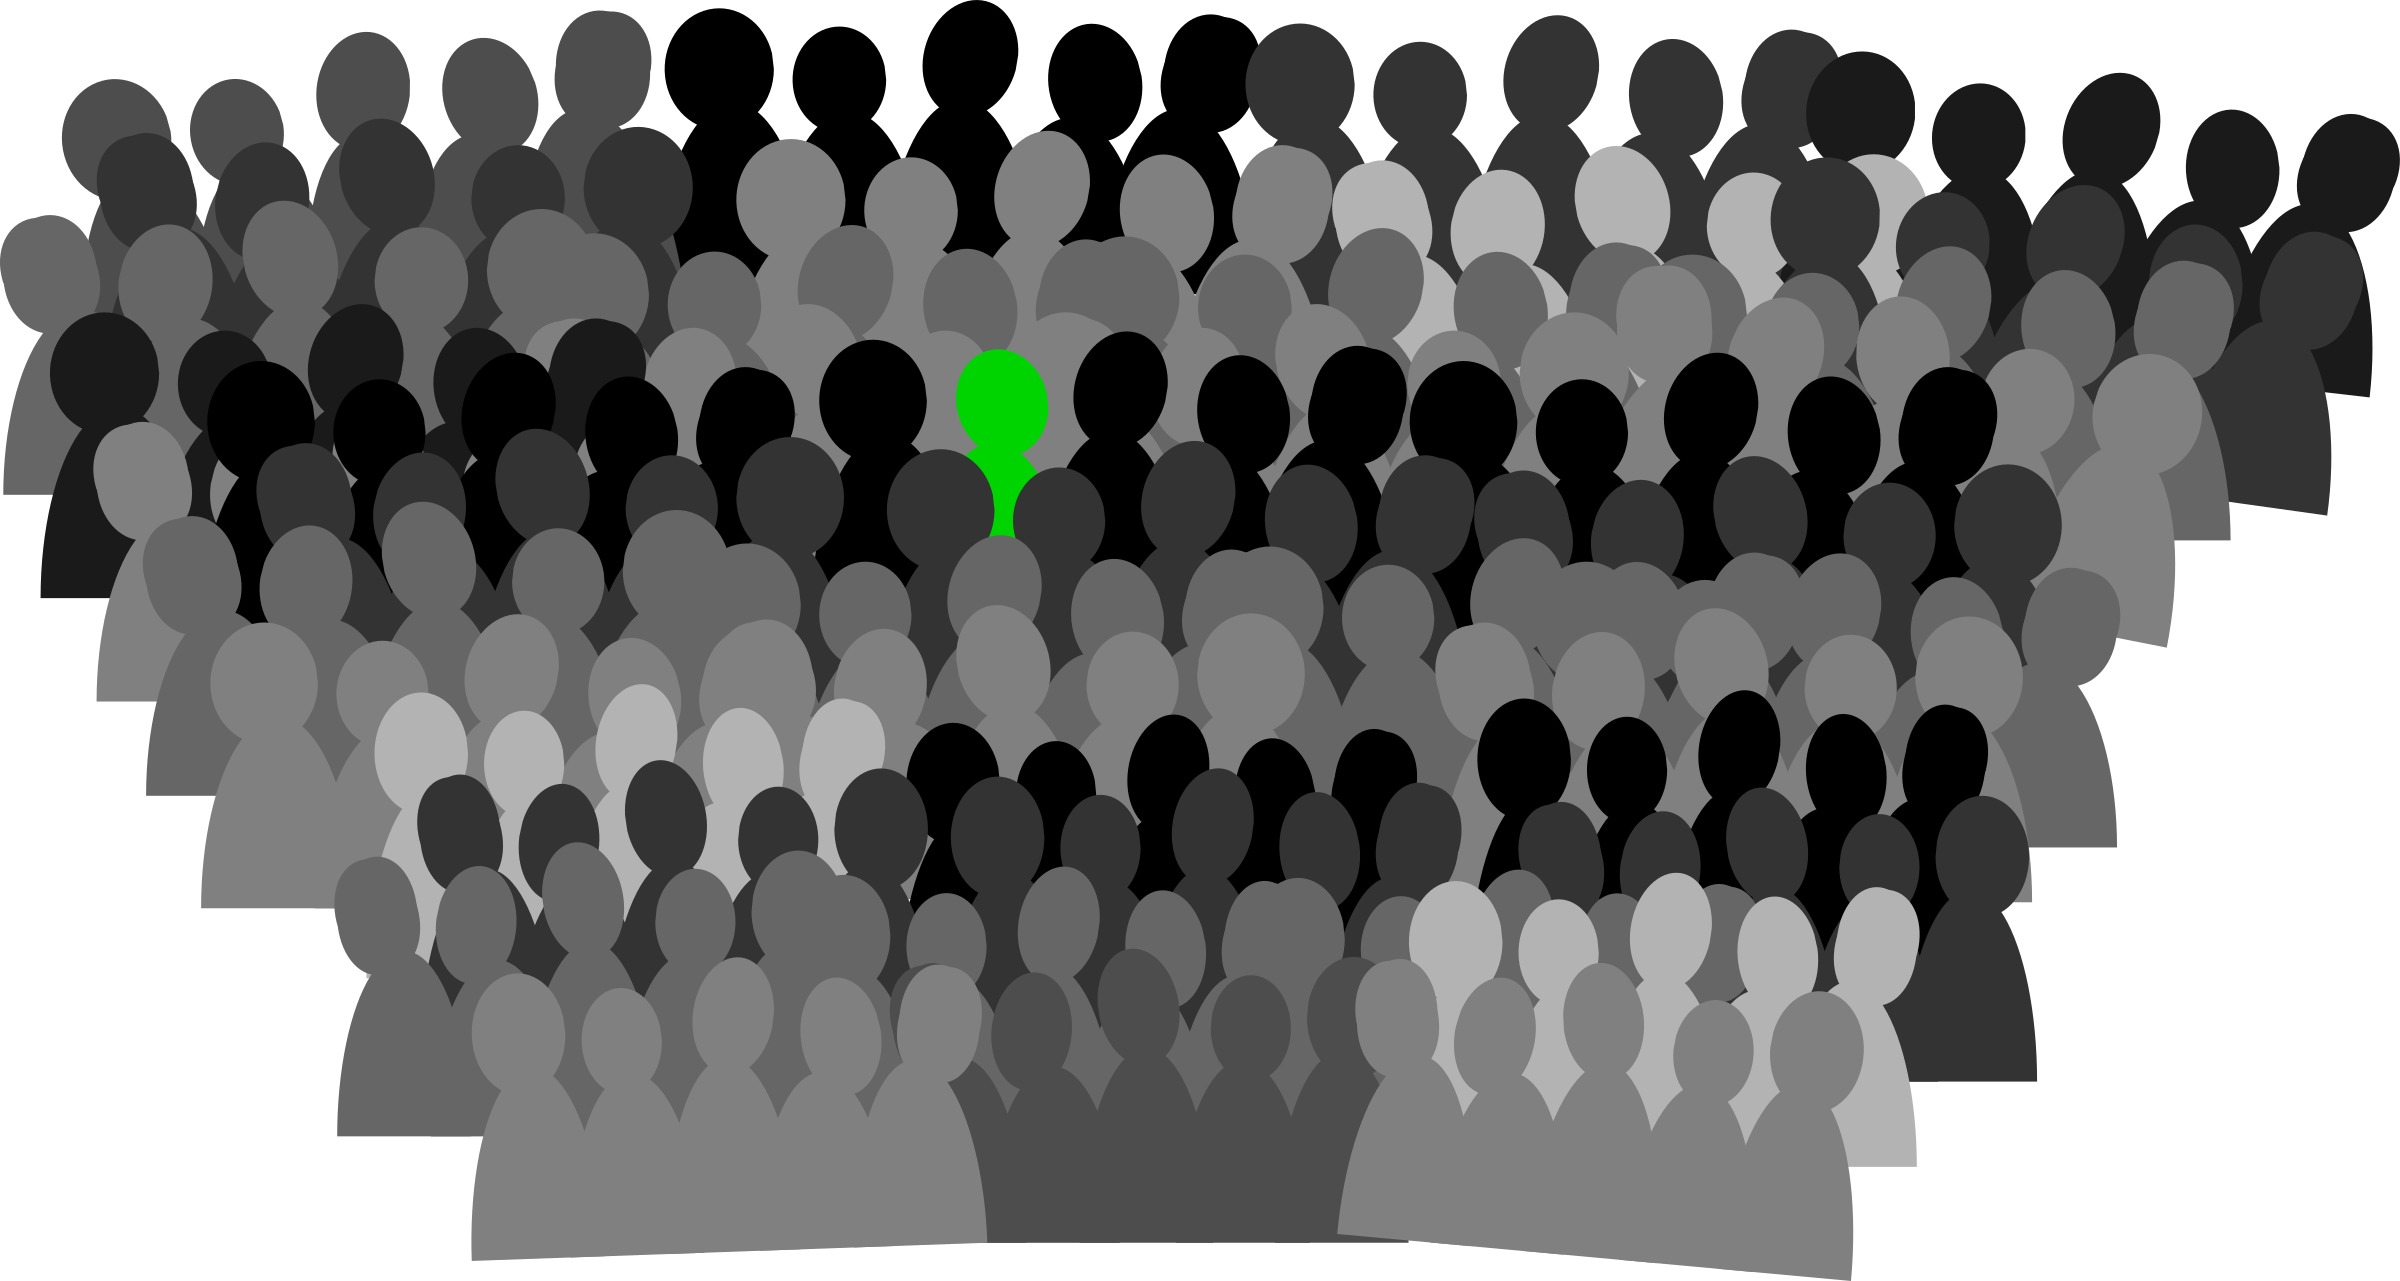 person svg crowd silhouette